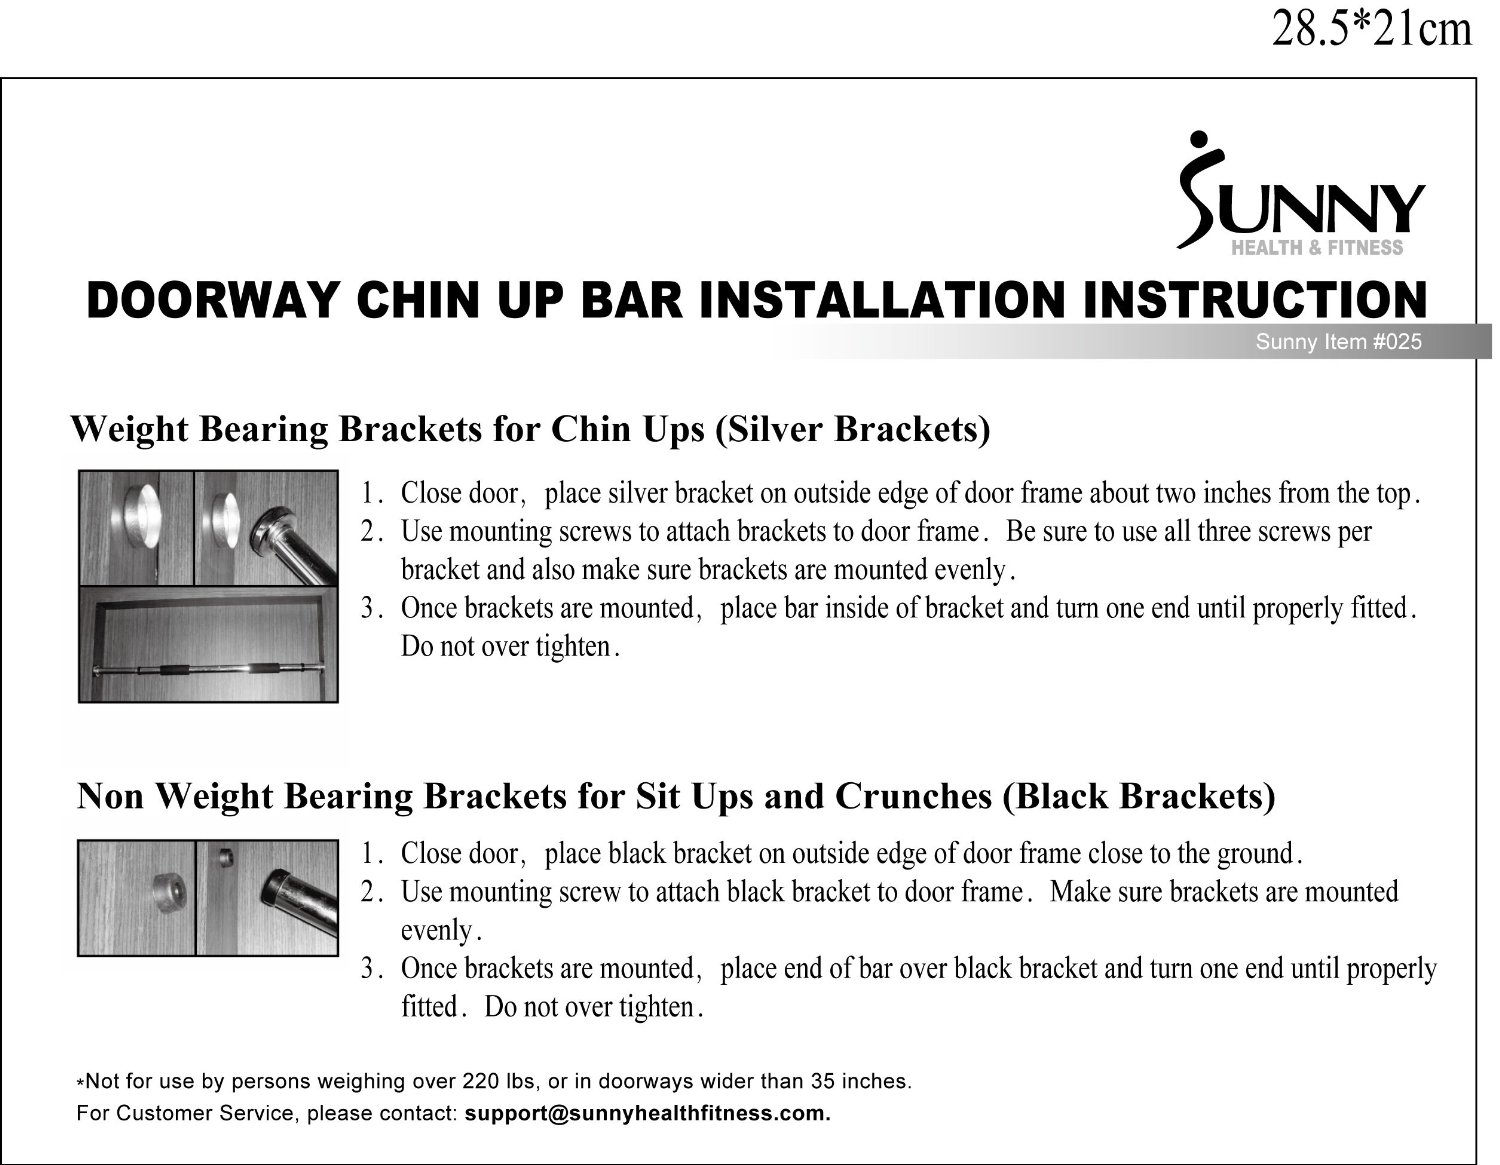 sunny health and fitness doorway chin up bar